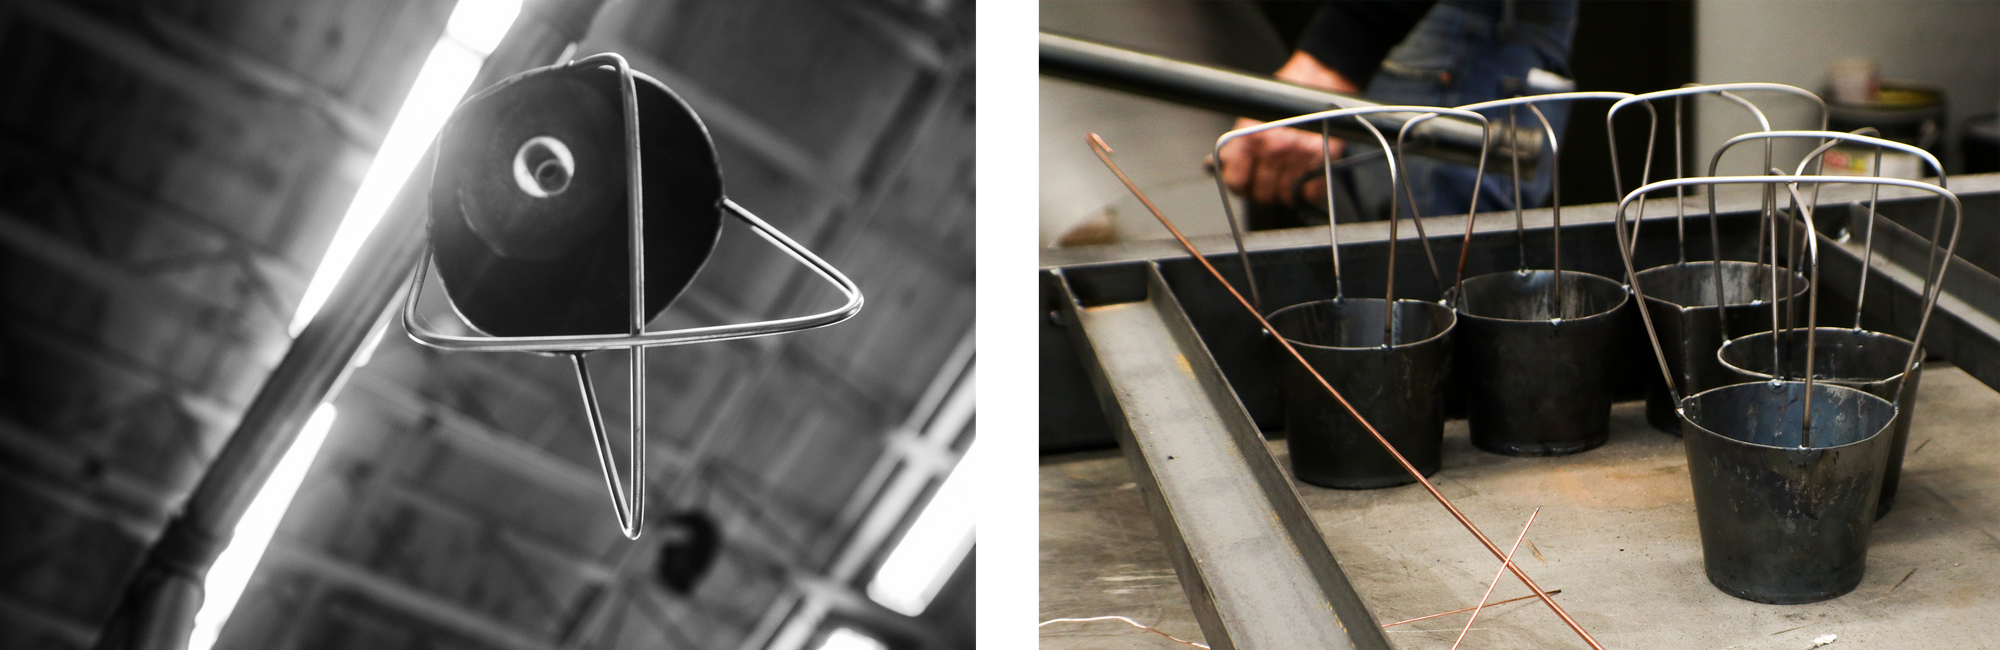 The team at Blackrock creates miniature models of pendant structure before fabricating the final design.